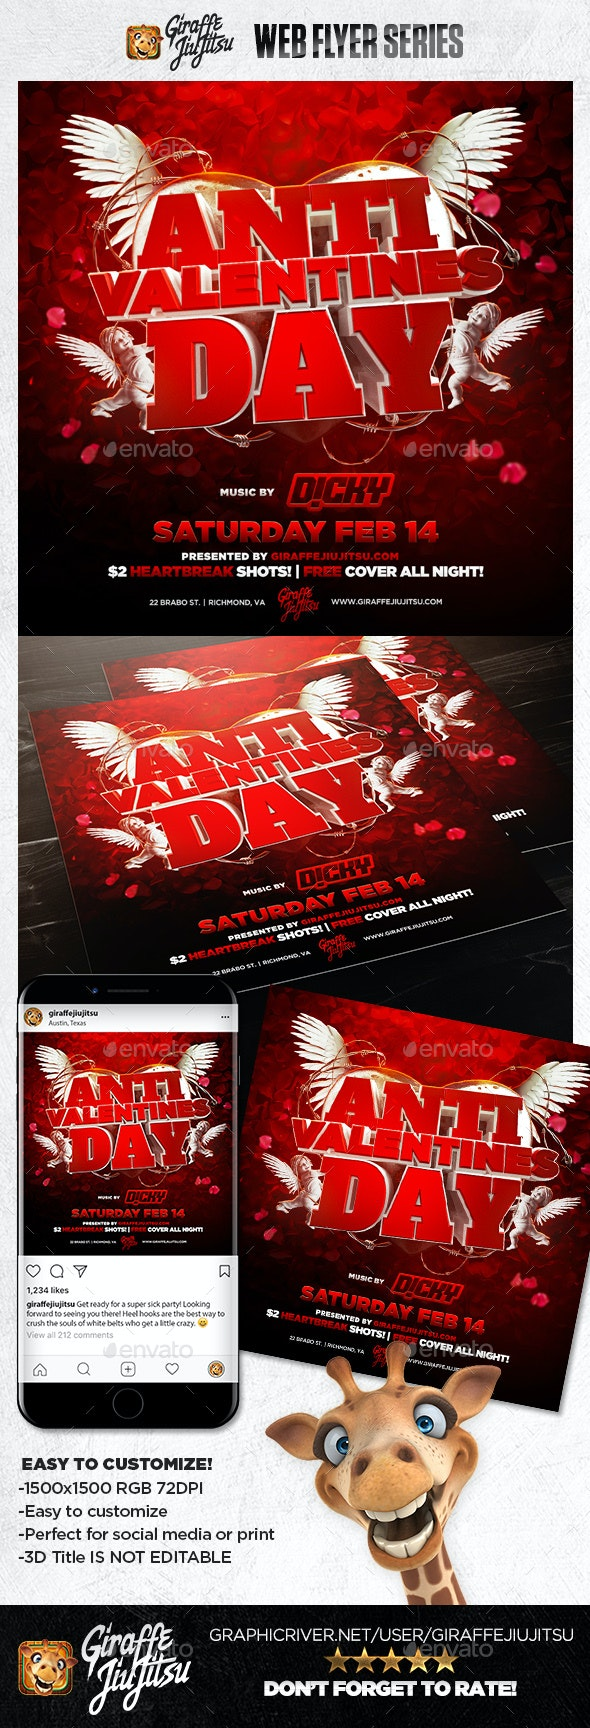 Anti-Valentine's Day 2019 Web Flyer Template - Social Media Web Elements